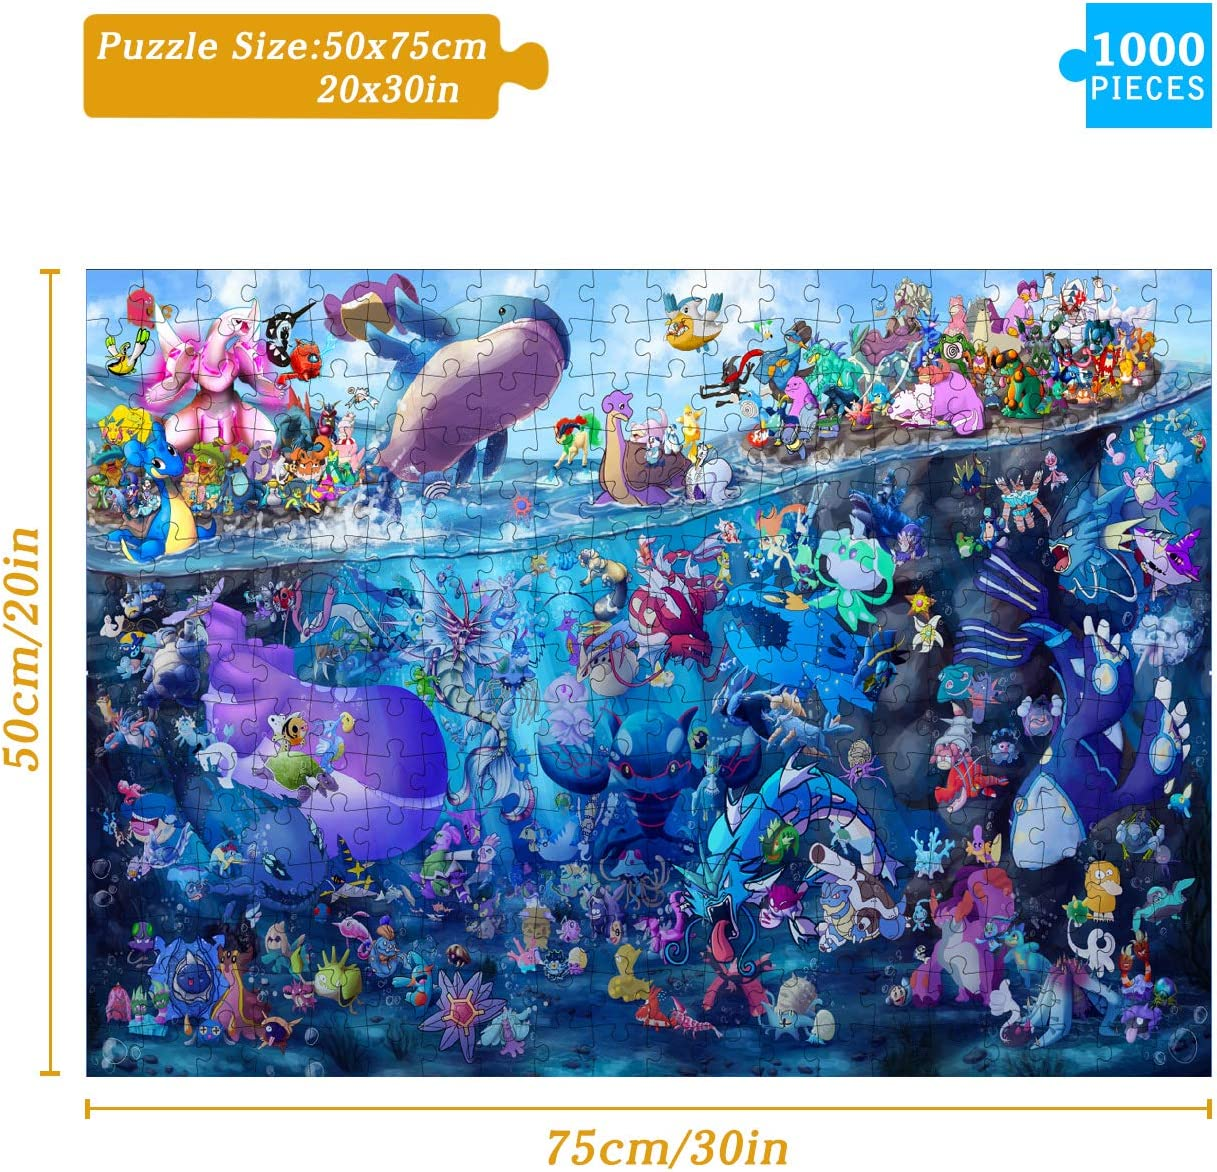 Anime Puzzles Pokemon Jigsaw Puzzle 1000 Piece Puzzles for Adults,Interactive Puzzles for Children,Comes with a high-Definition Poster